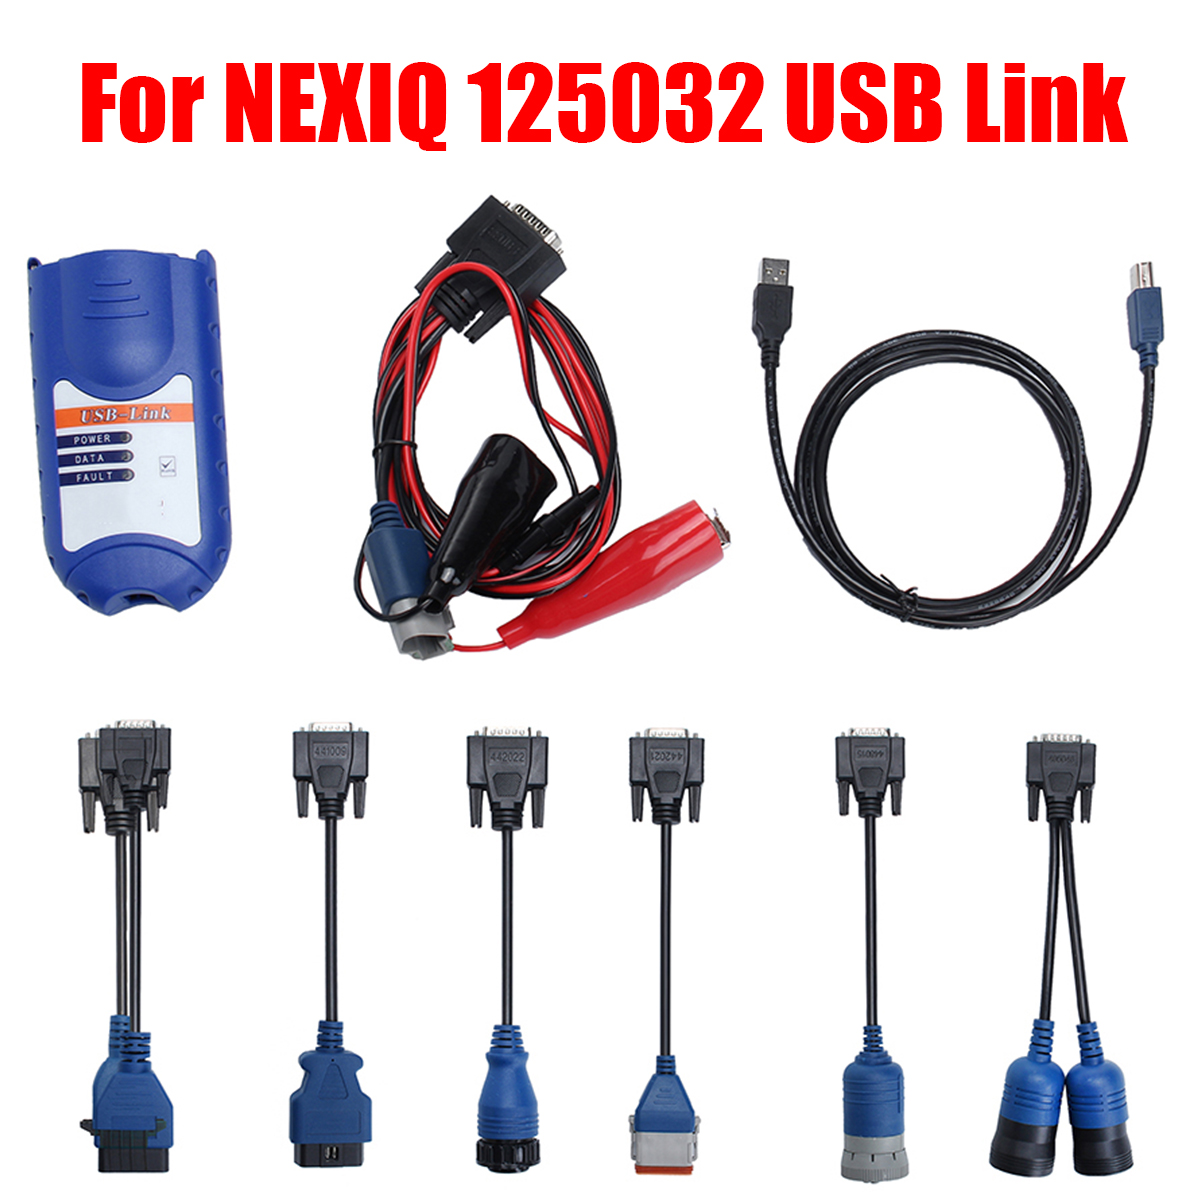 7Pcs 125032 USB Link Diesel Heavy Duty Truck Diagnostic Tool for RP1210A/B